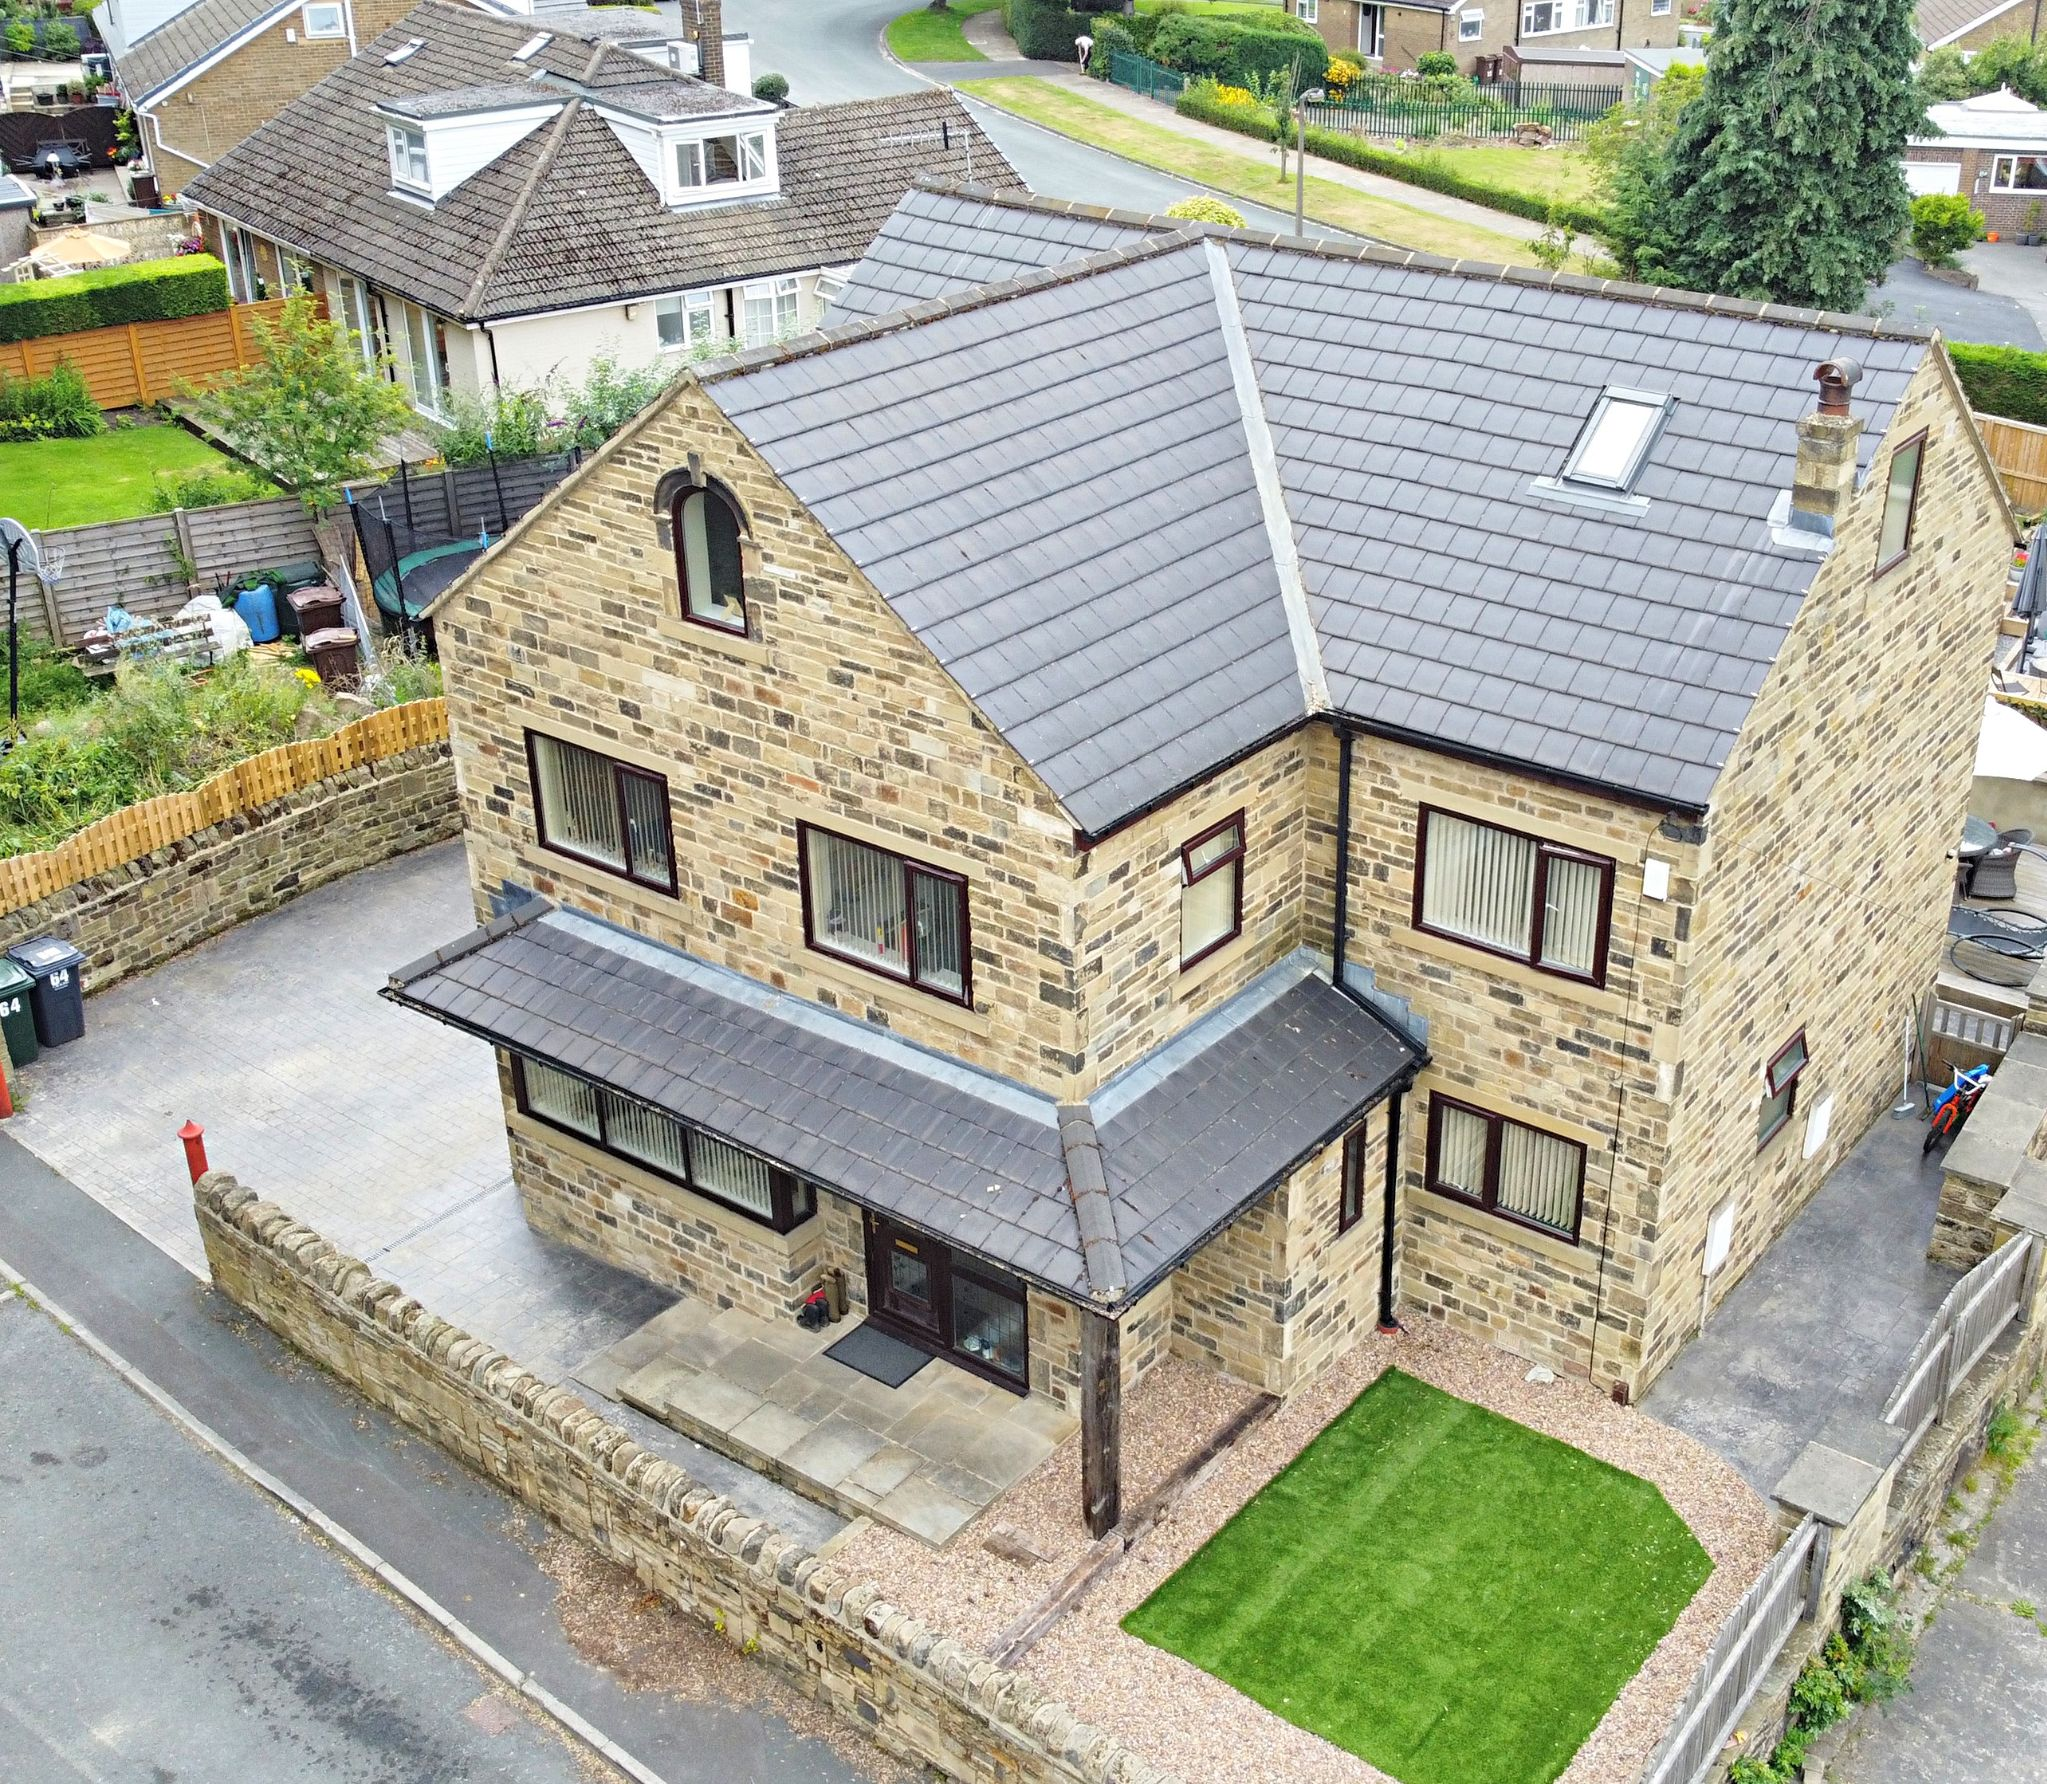 6 Bedroom Detached House For Sale - Photograph 1